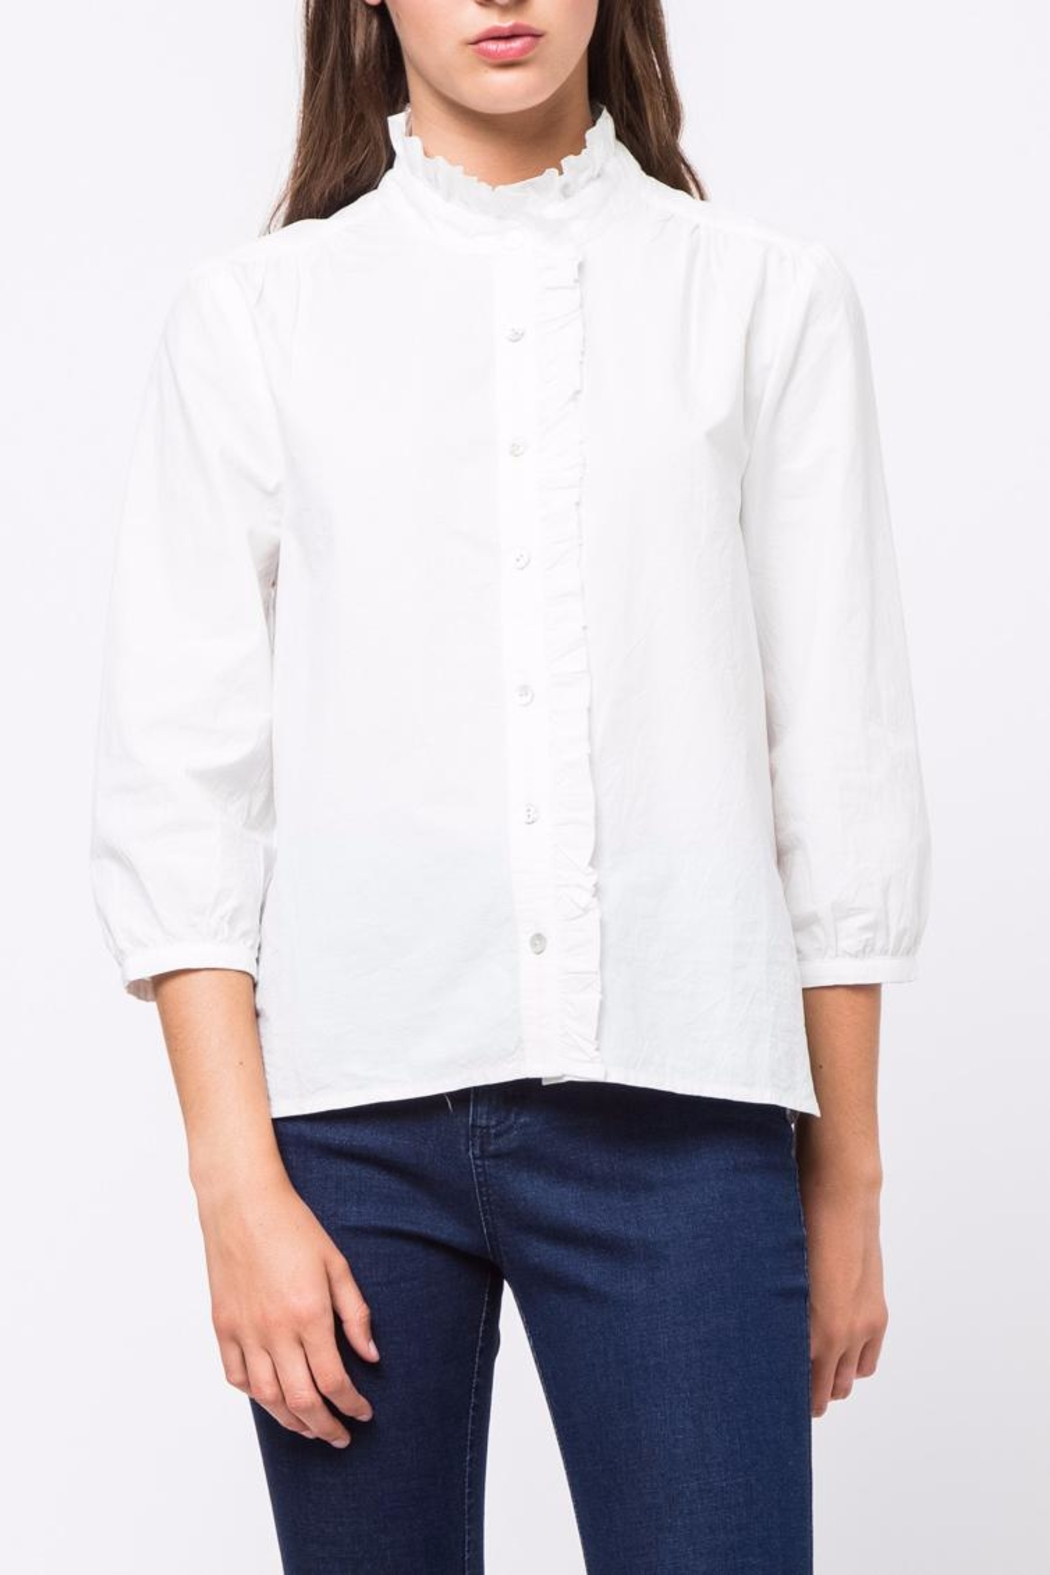 Movint Pleated-Collared-Detailed Top - Front Cropped Image